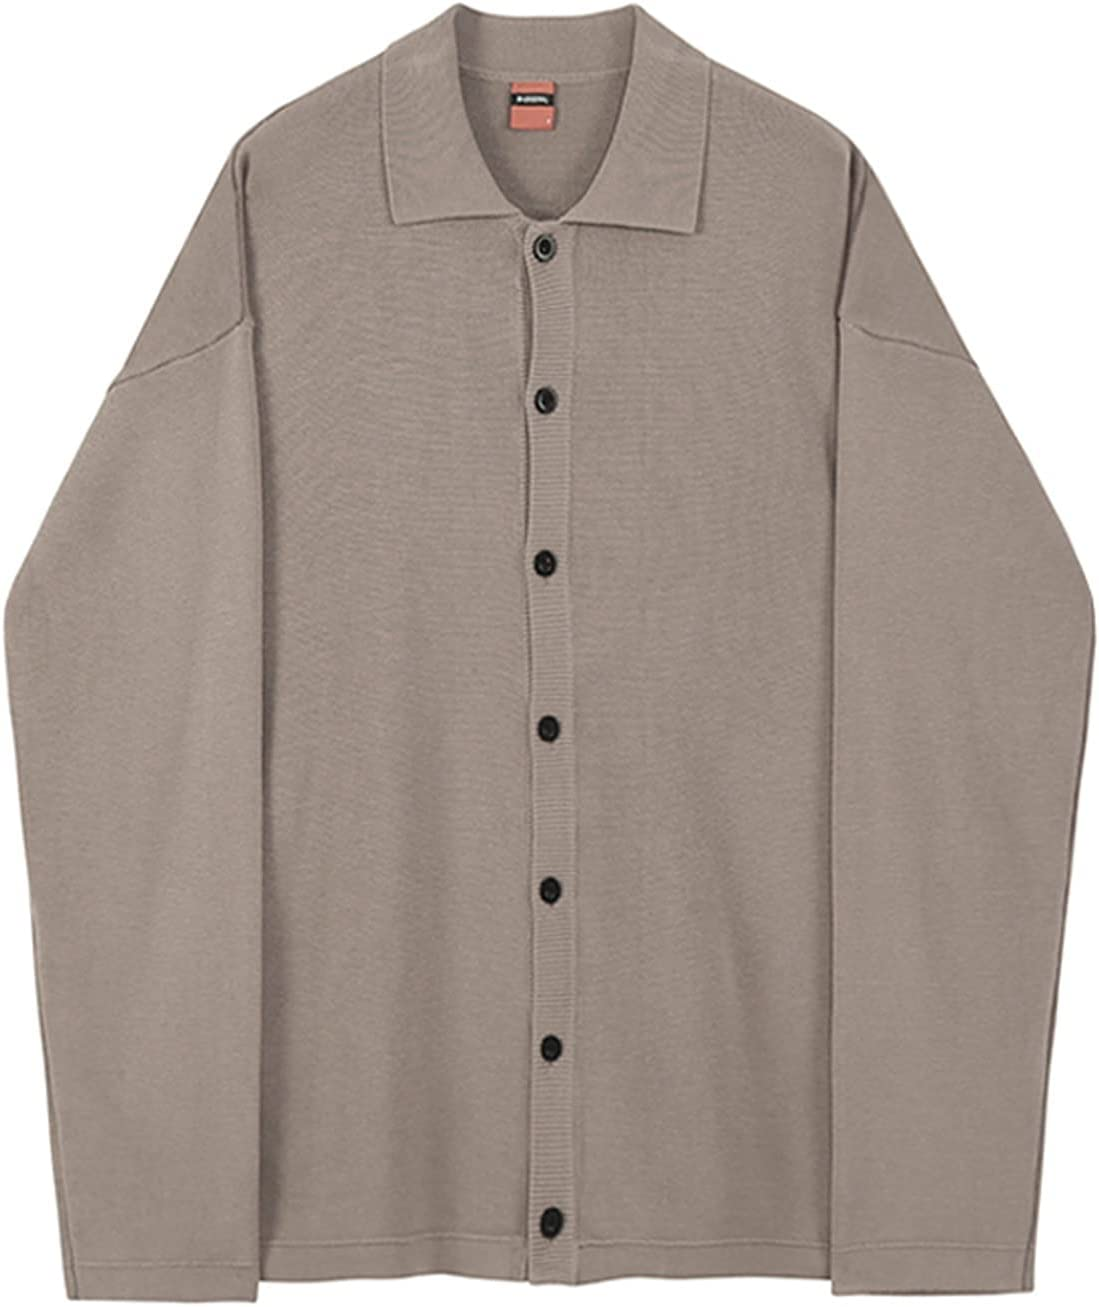 PAOMIAN Cardigan Sweater Men's Spring Autumn New Korean Fashion Single Breasted (Color : Brown, Size : XXL)